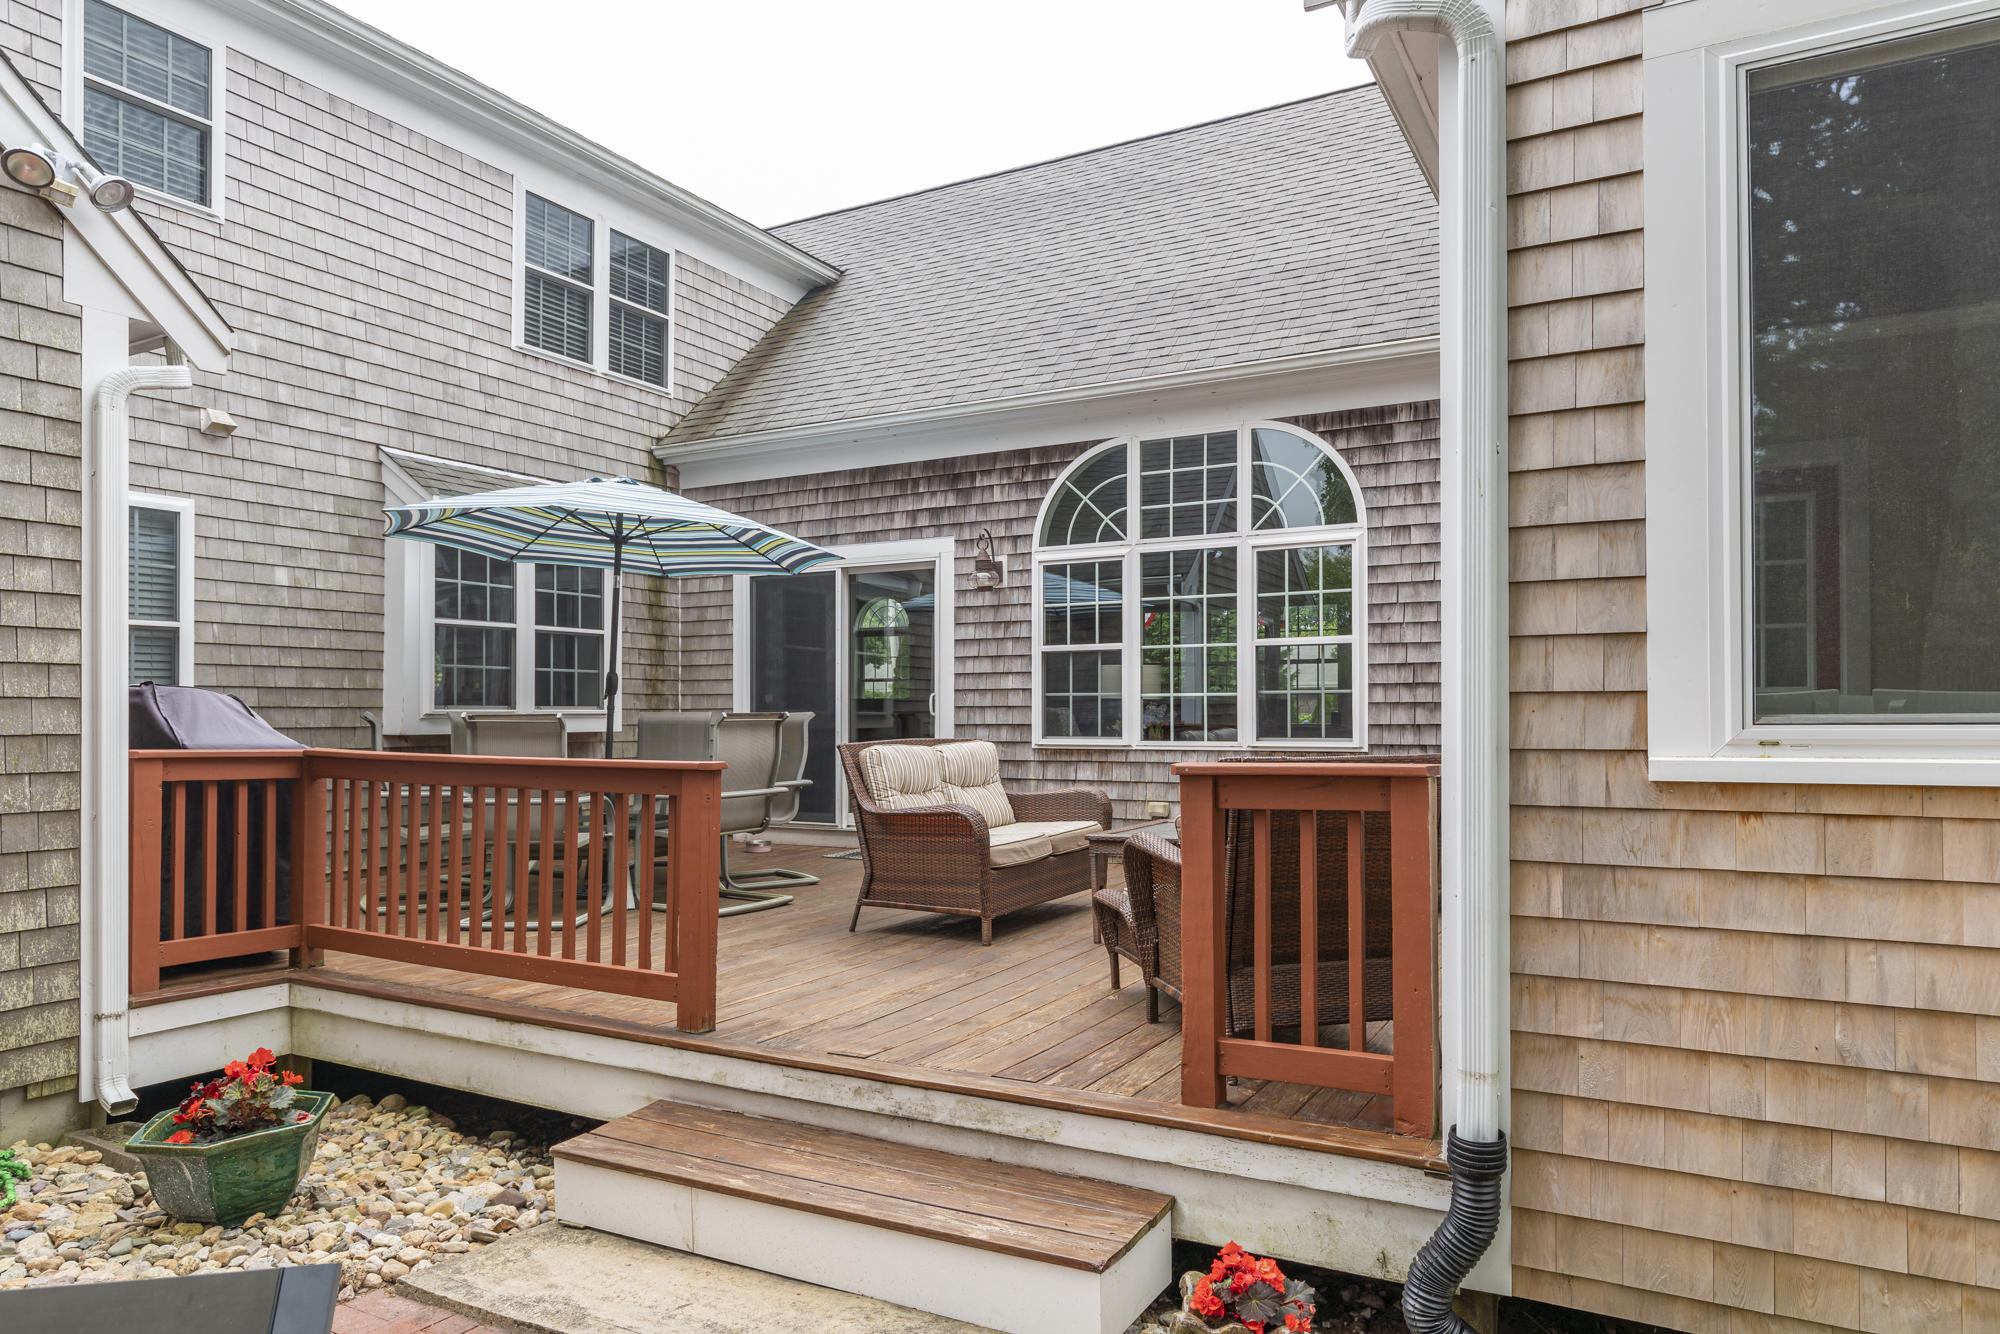 3 Nellies Way, Chatham, MA  02633 - slide 33